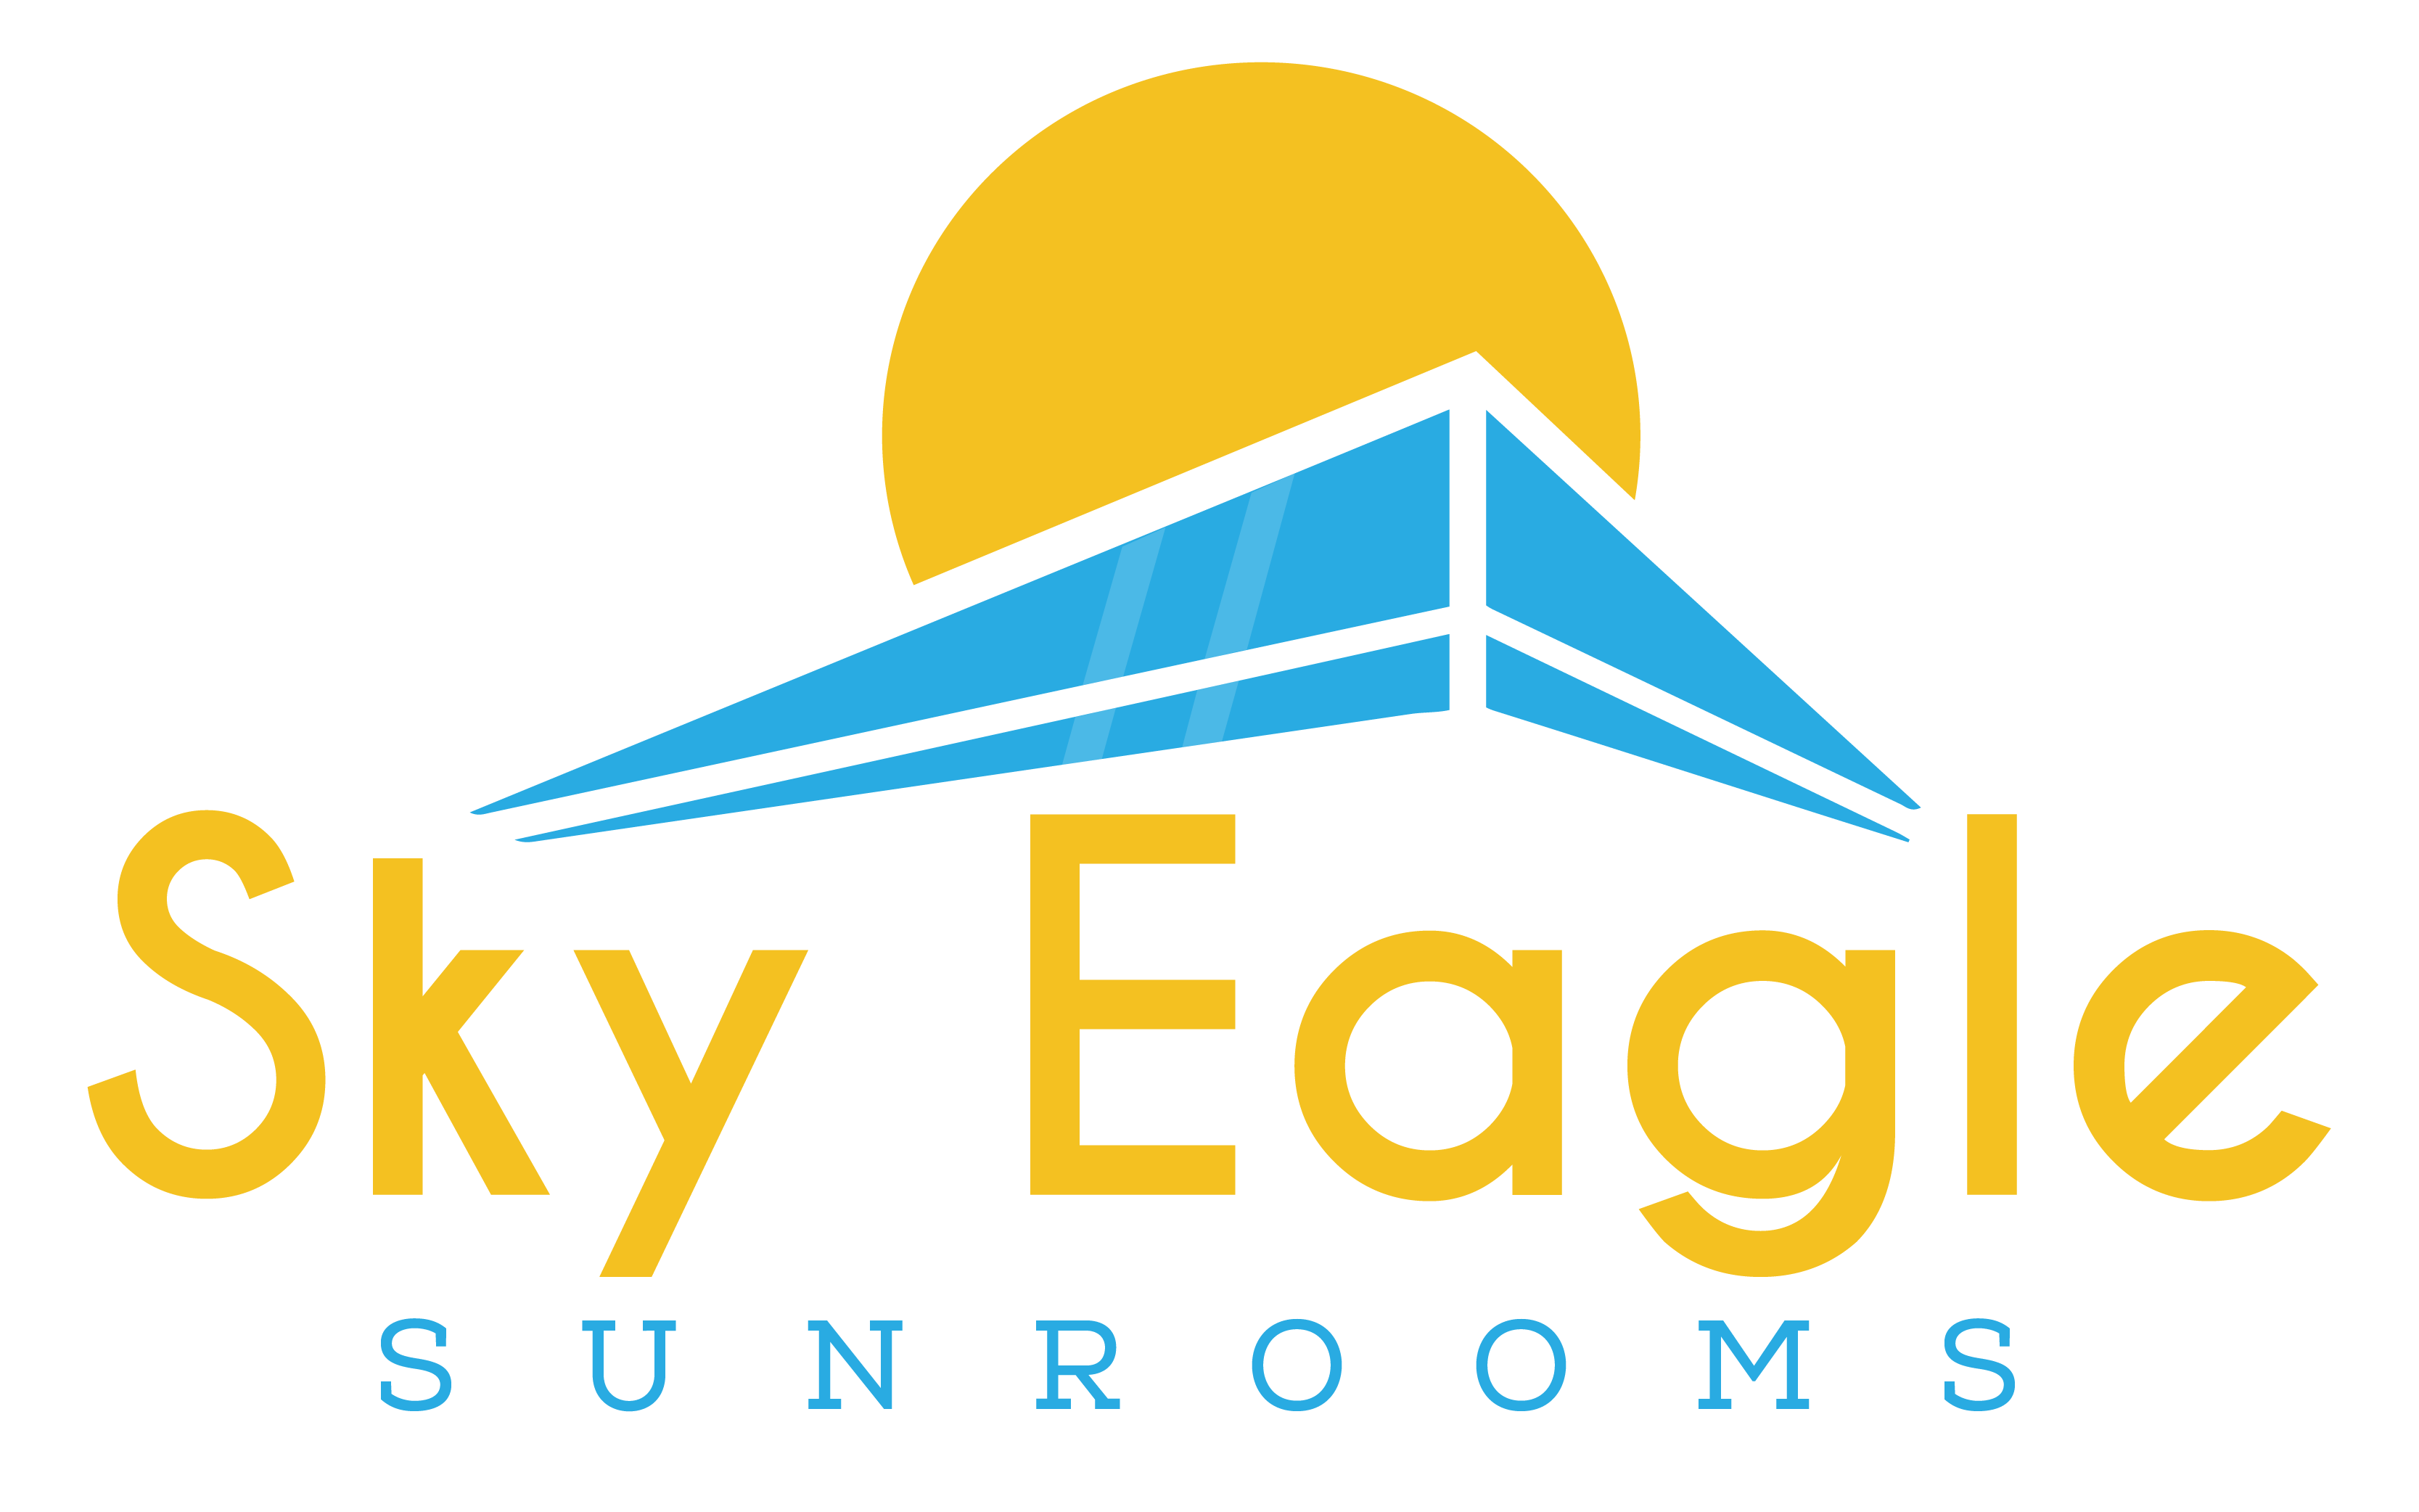 Sky Eagle Sunrooms